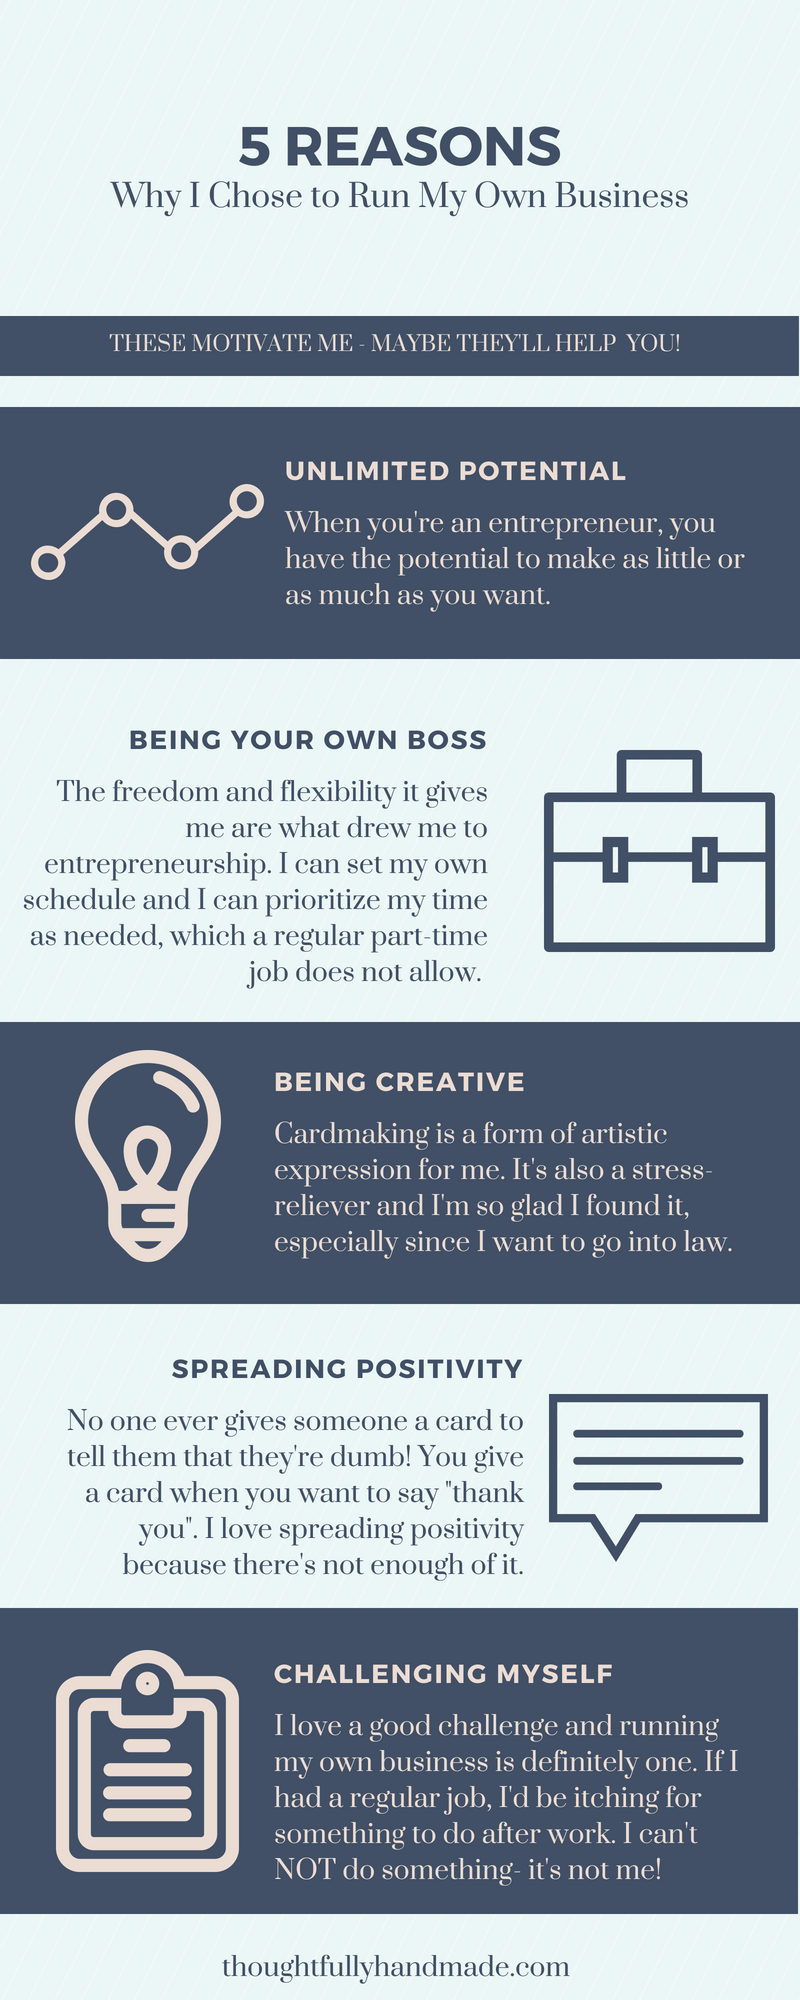 5 reasons why I chose to run my own business infographic| Thoughtfully Handmade